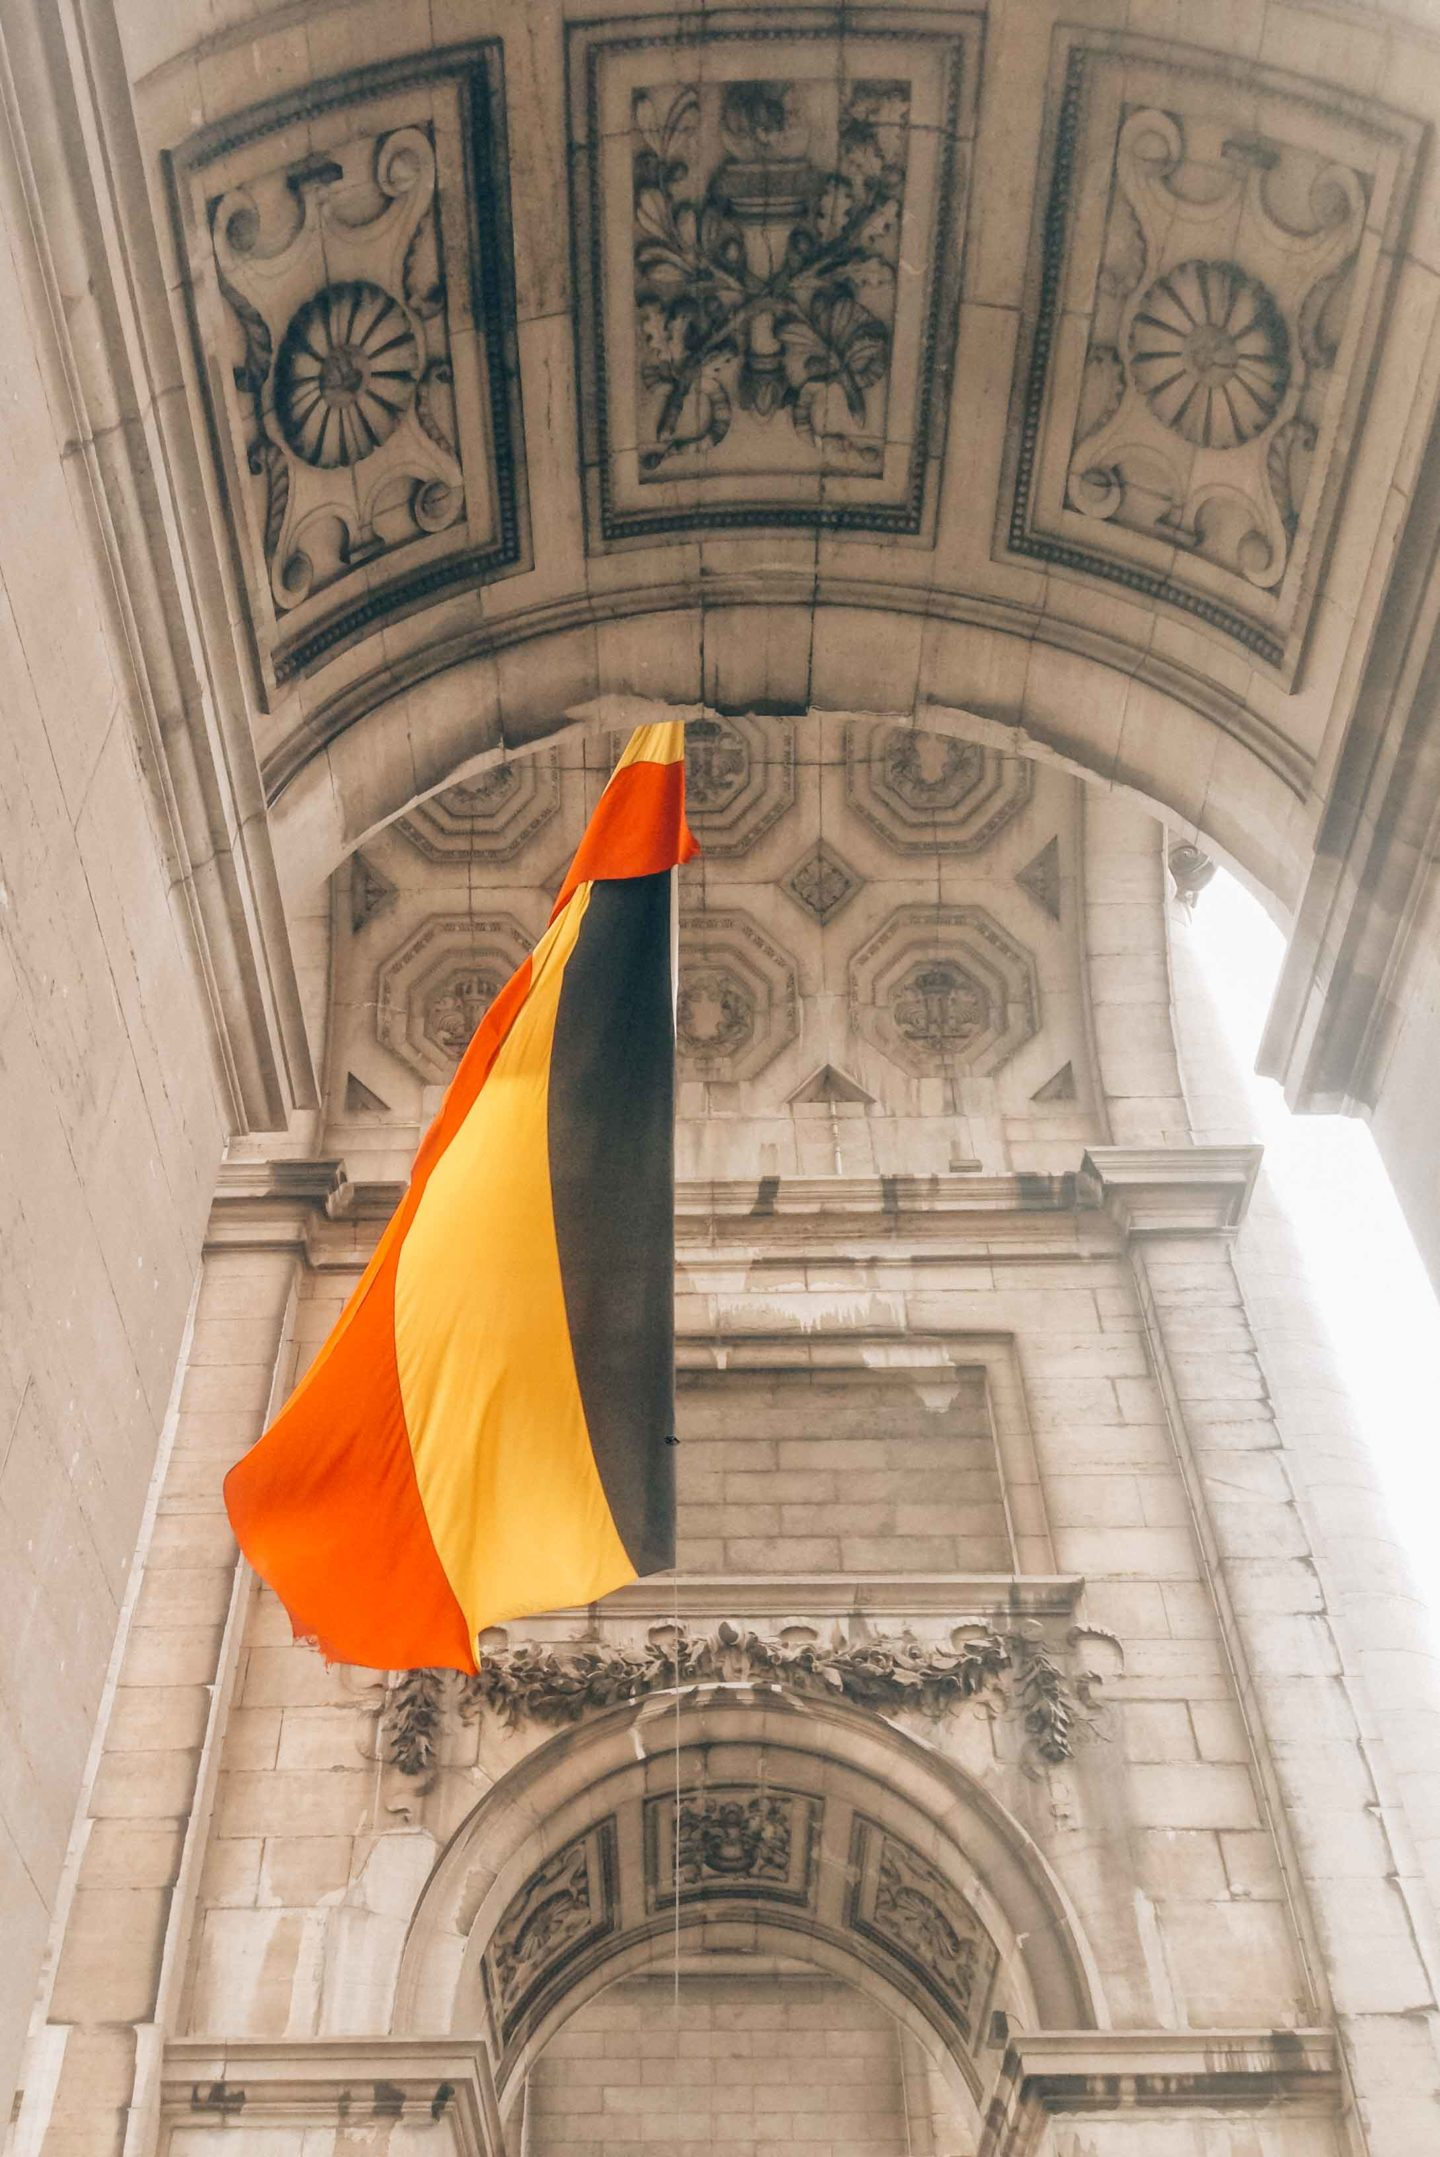 The Belgian flag in Cinquantenaire Park, Brussels